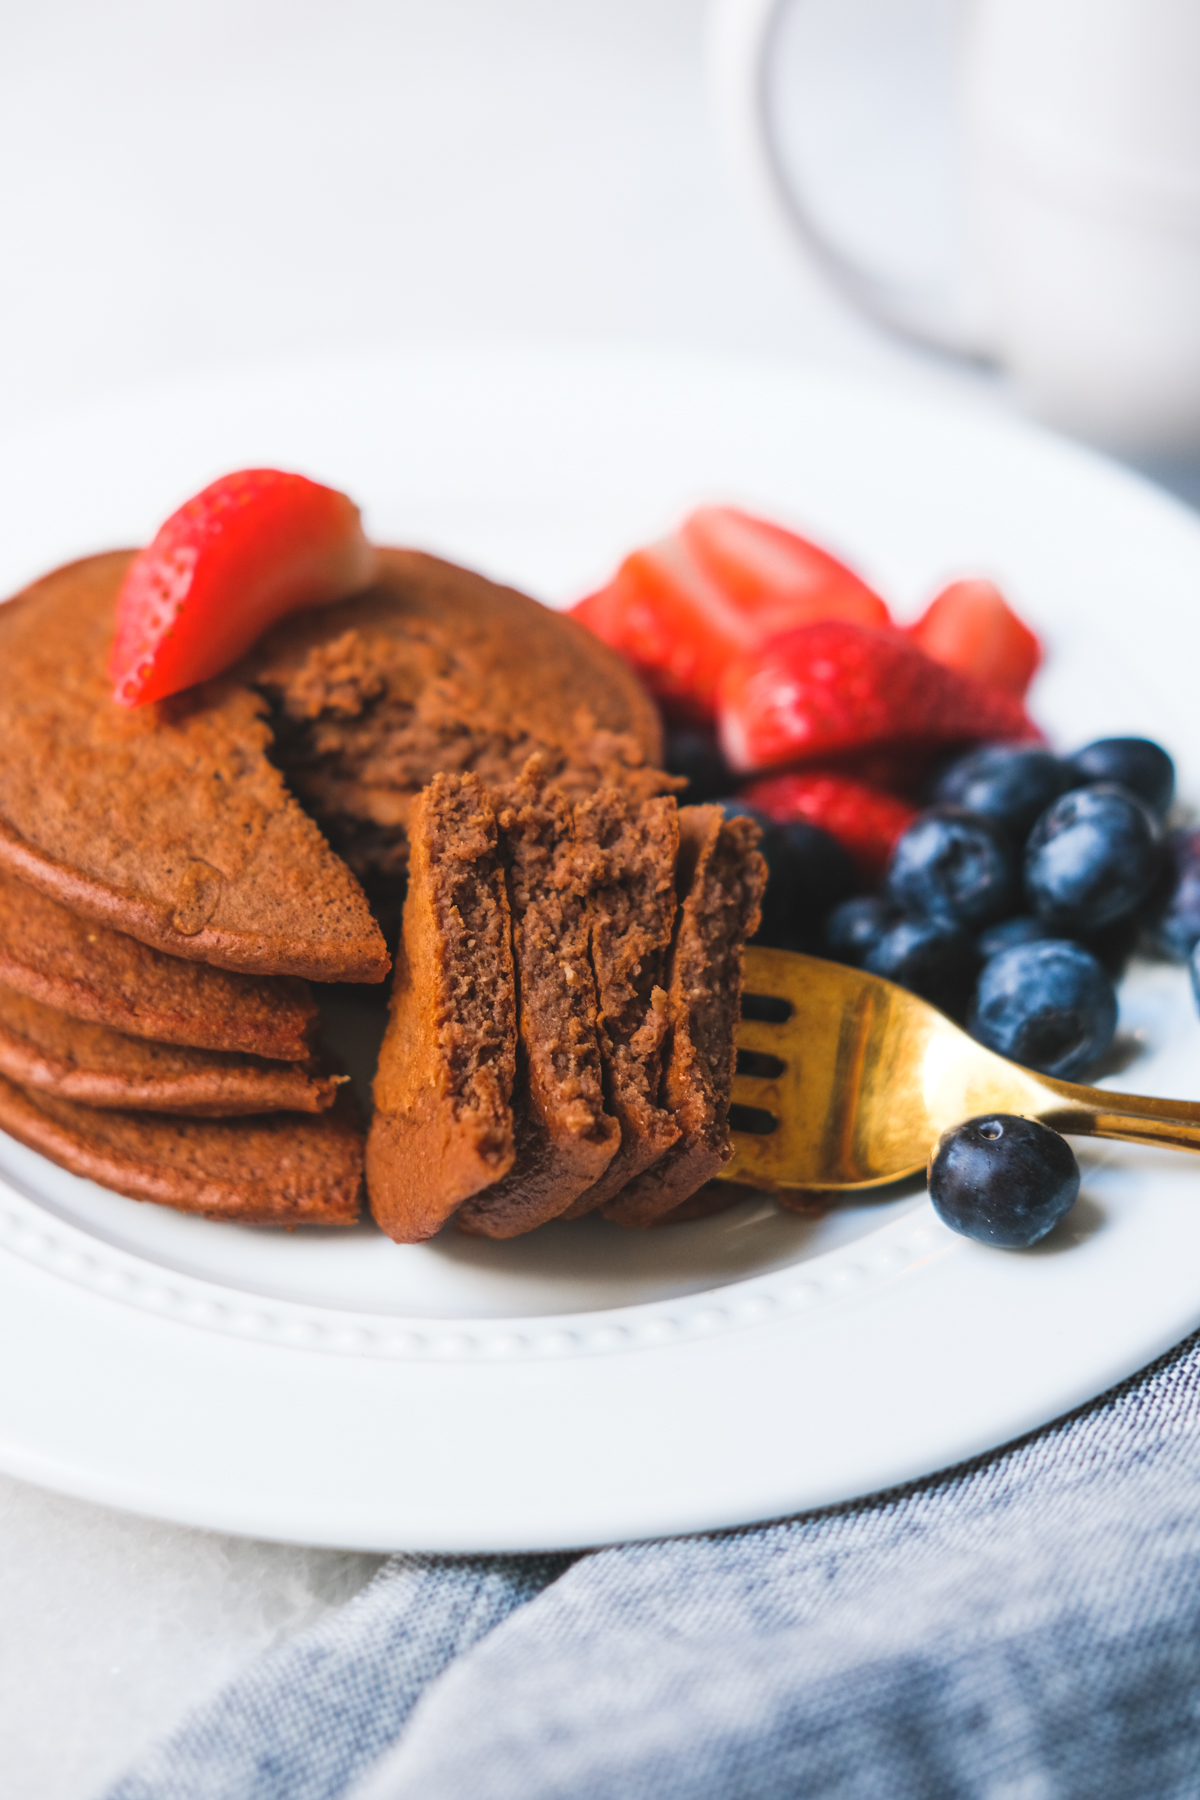 forkful of chocolate protein pancakes with berries on a plate